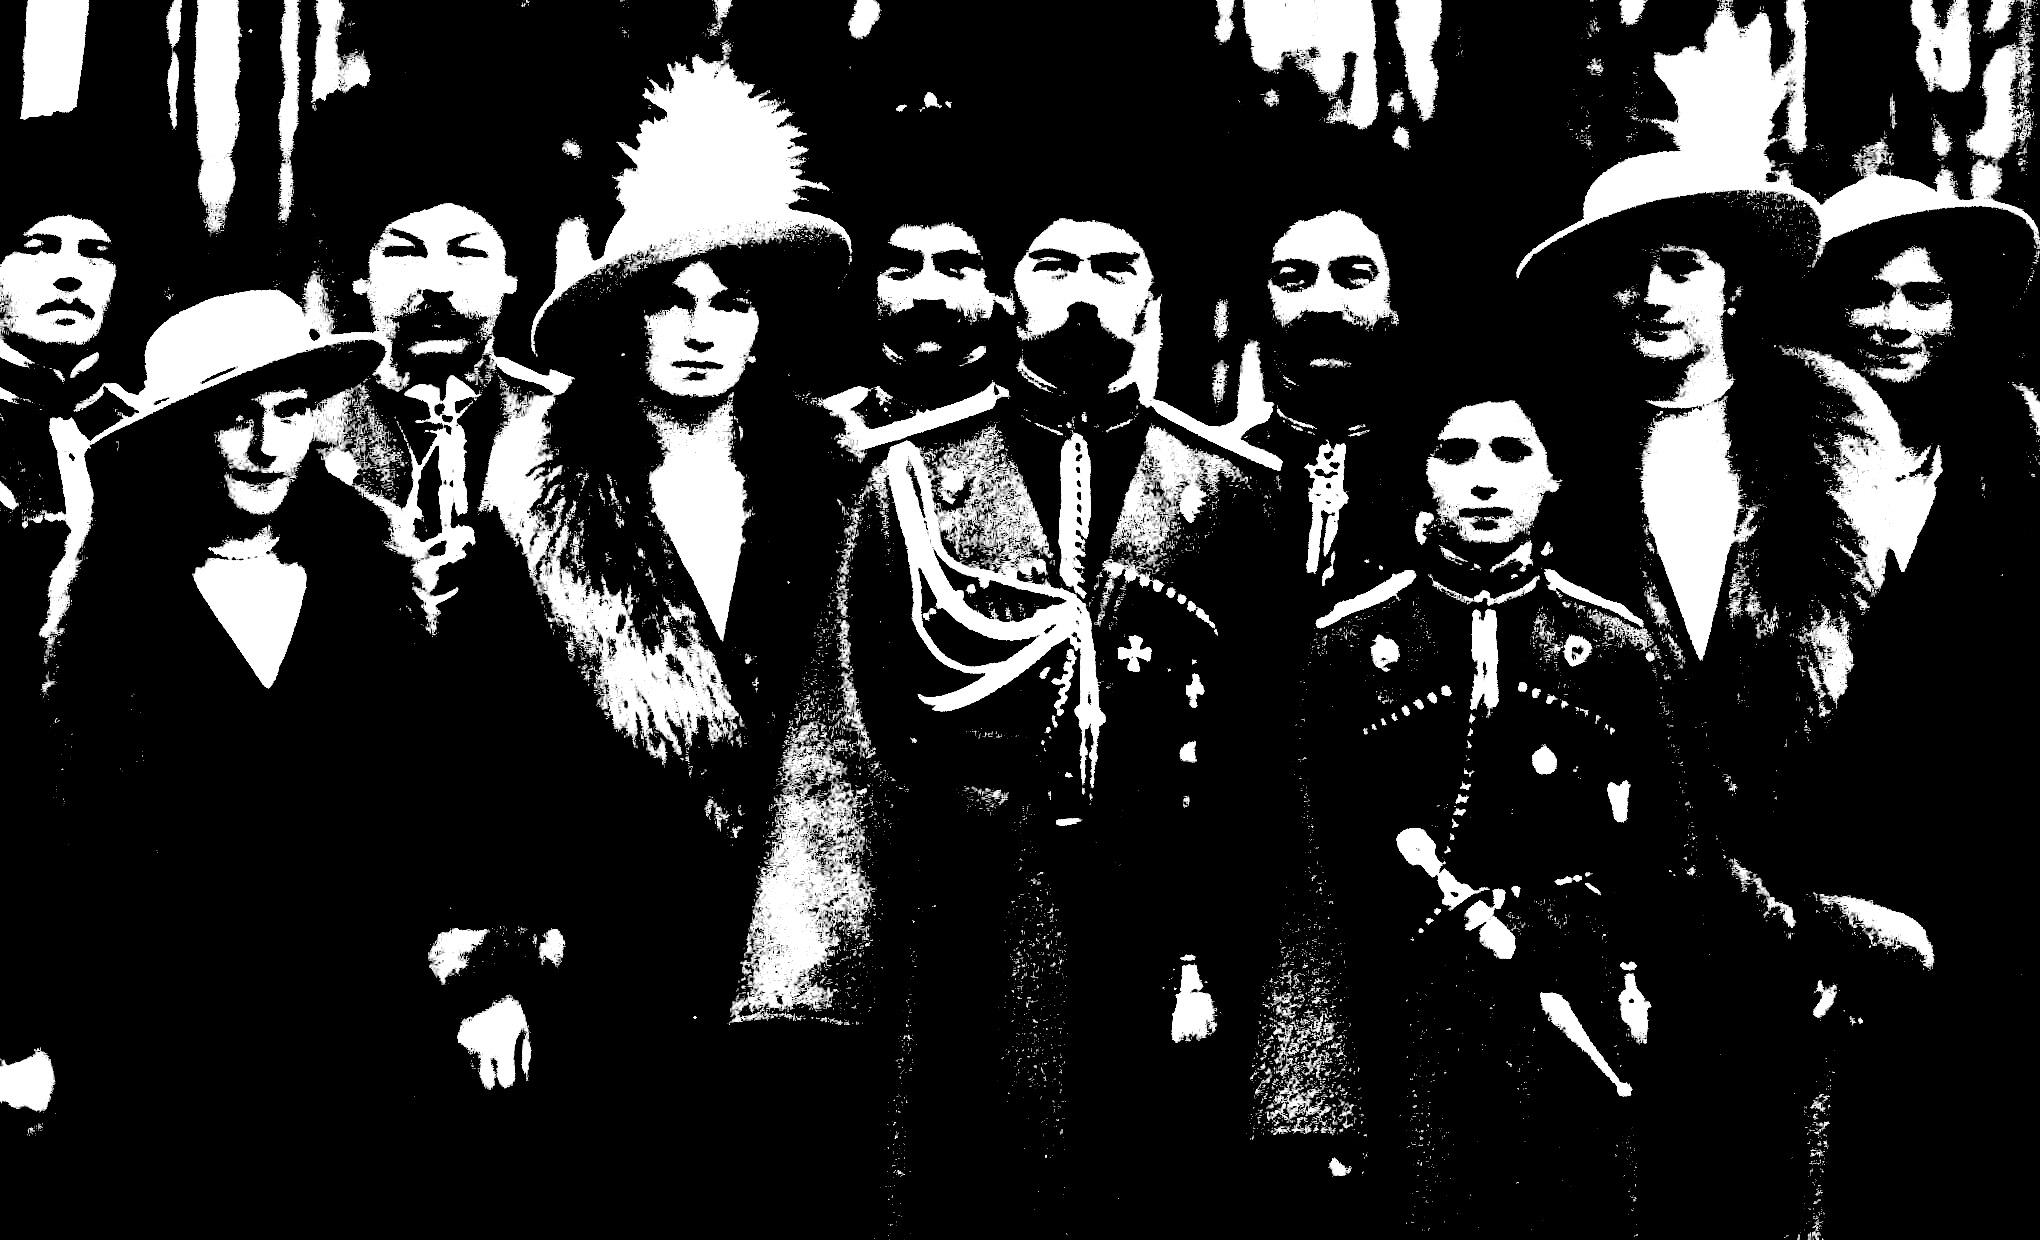 Nicholas_II_and_children_with_Cossacks_of_the_Guard,_cropped.jpg